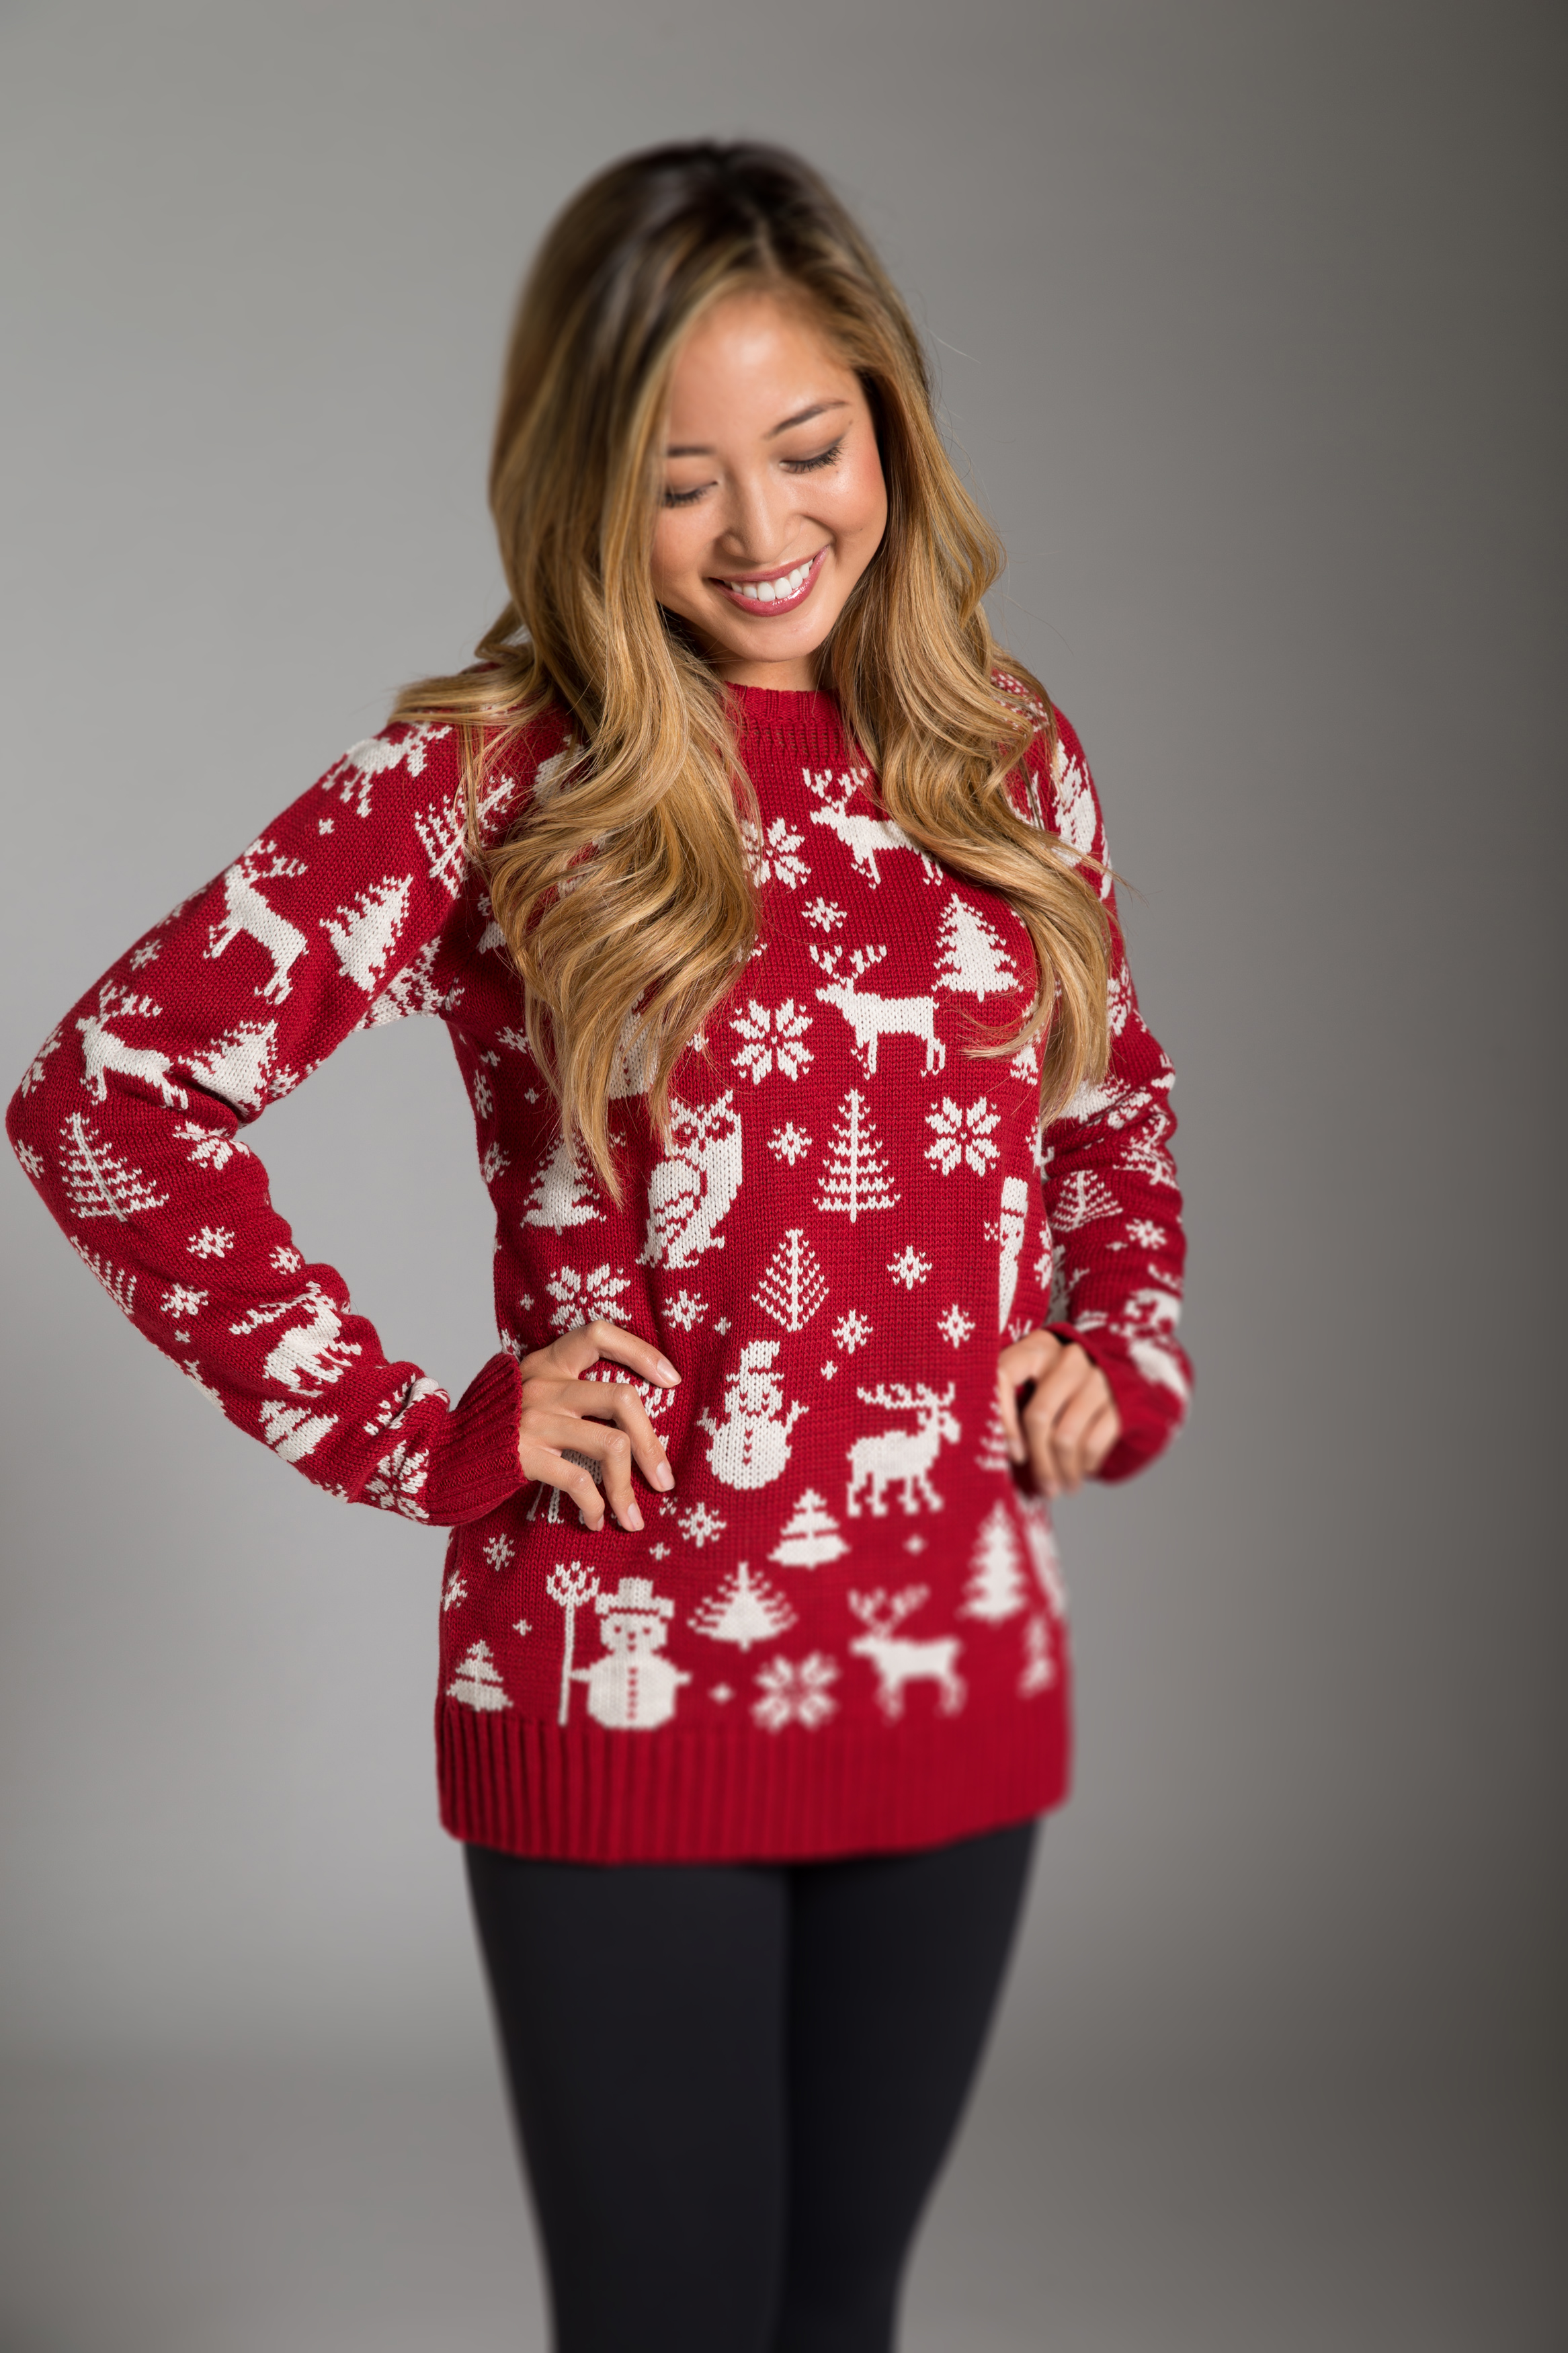 RED HOT XMAS UNISEX SWEATERS